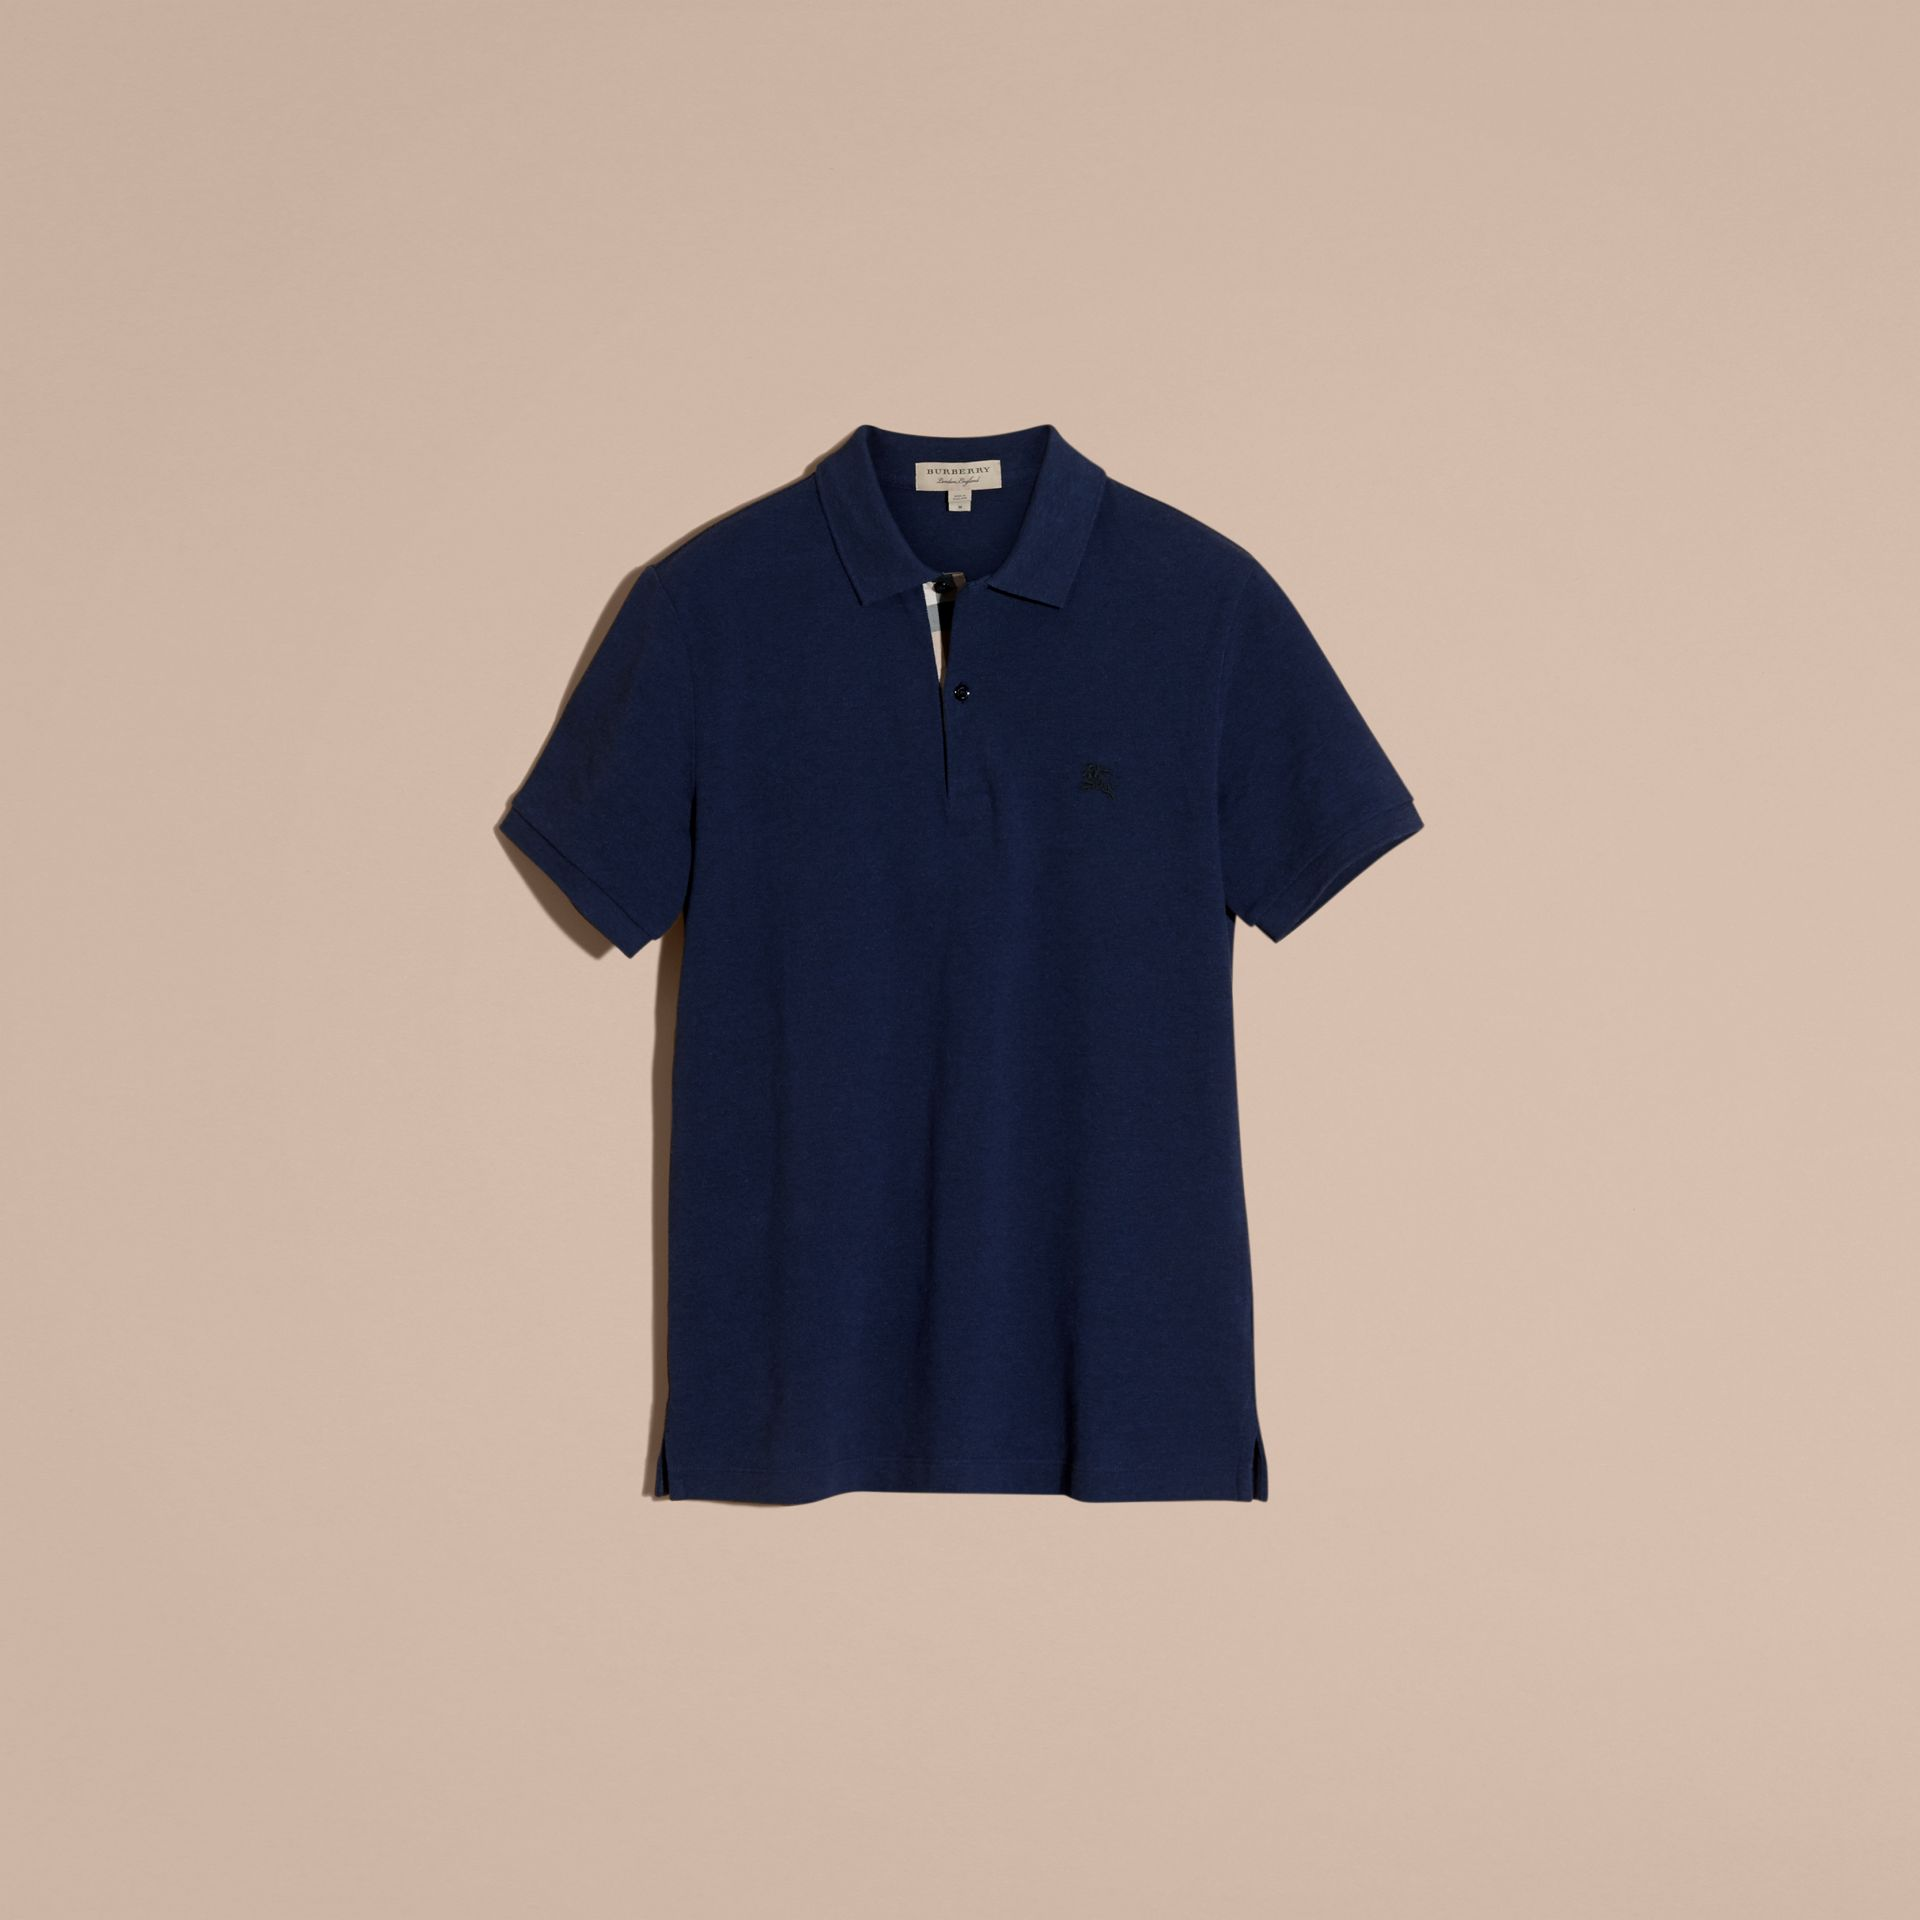 Navy melange Check Placket Cotton Piqué Polo Shirt Navy Melange - gallery image 4